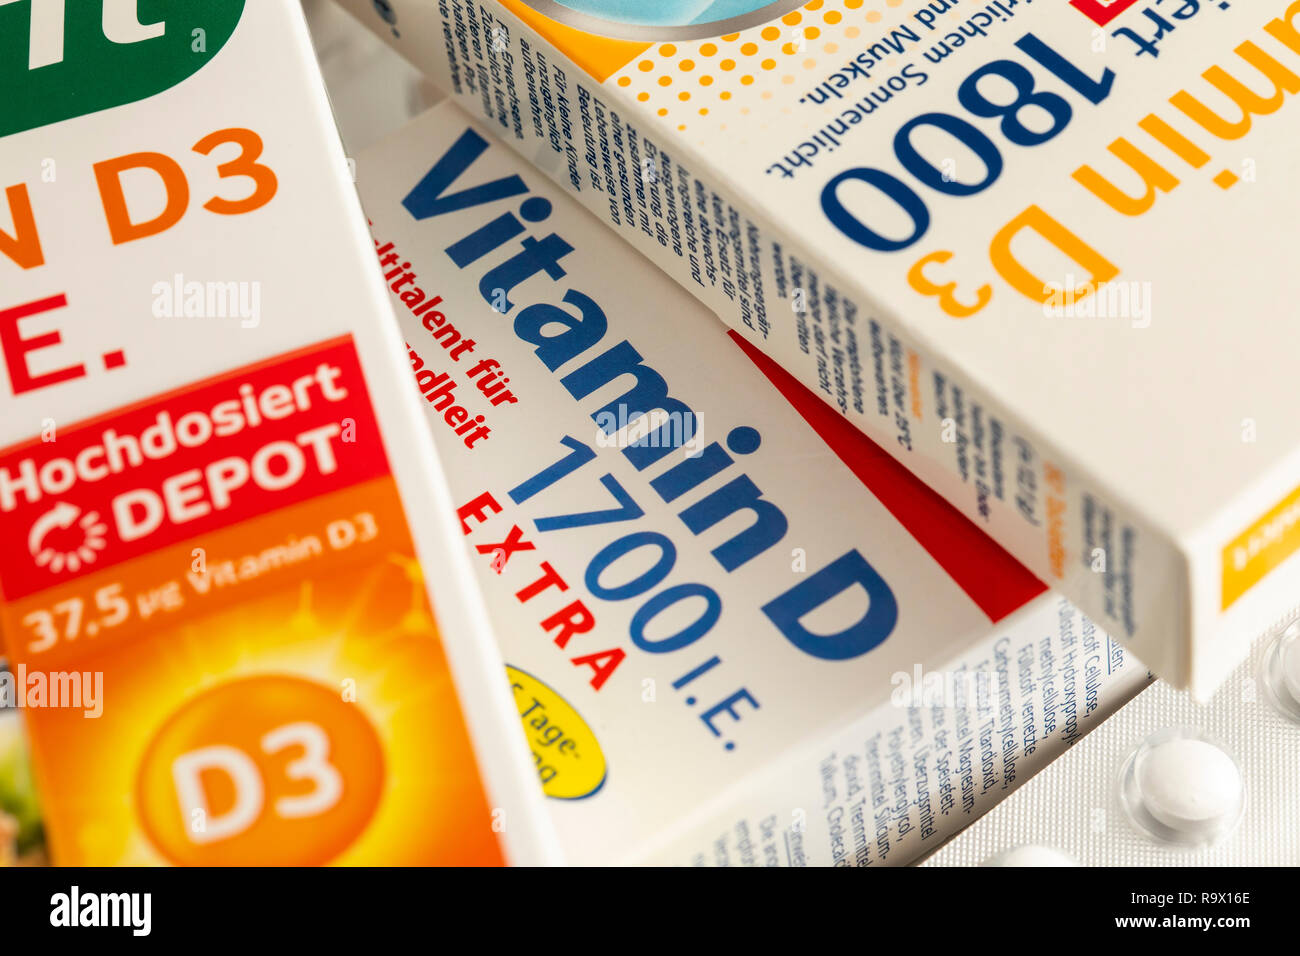 Vitamin D tablets packs, the preparation is intended to supplement the vitamin D deficiency, by low solar radiation, for example in winter, - Stock Image